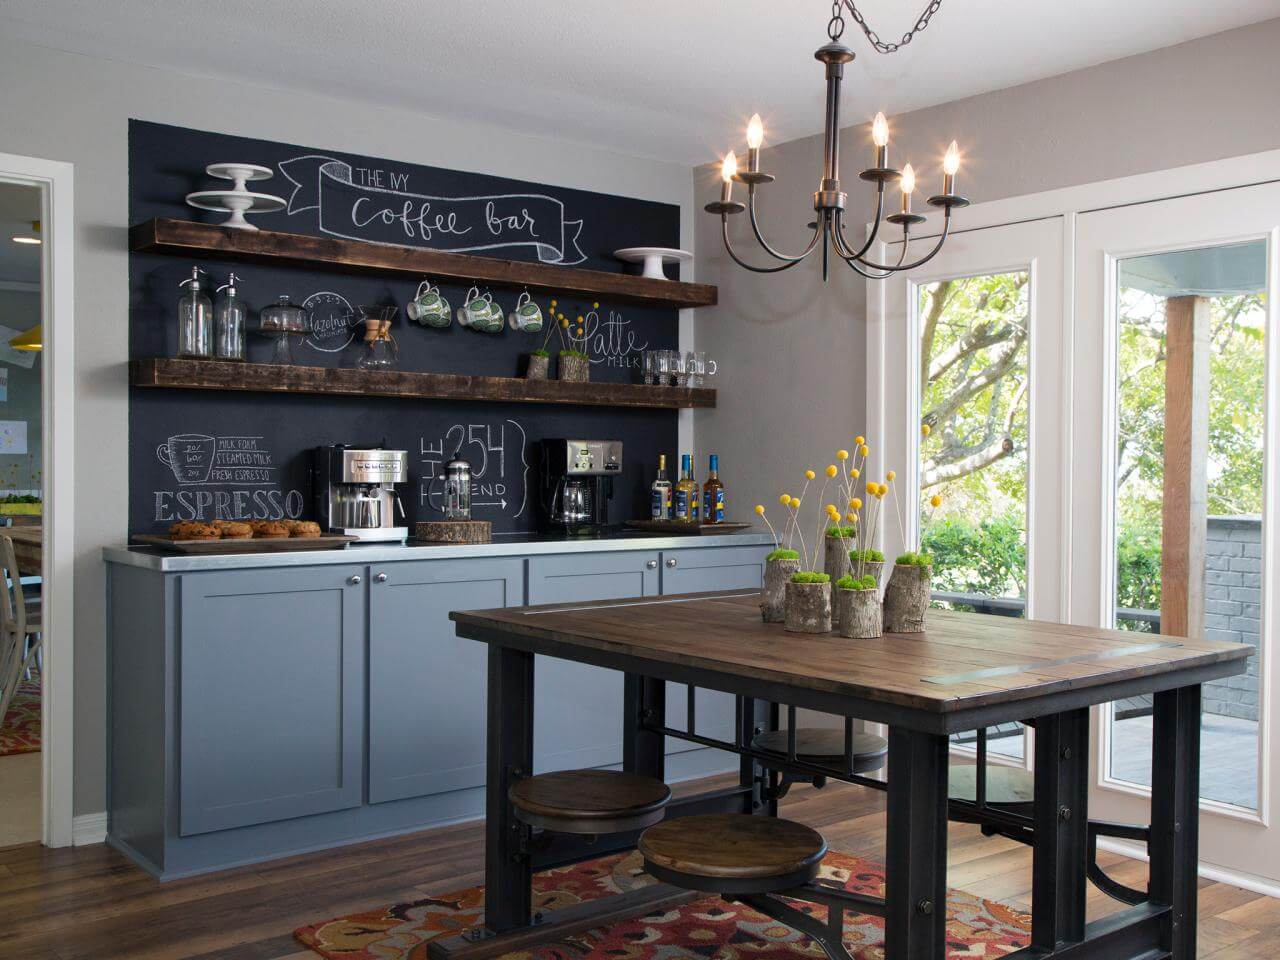 31. Rustic Chalkboard Kitchen Accent Wall